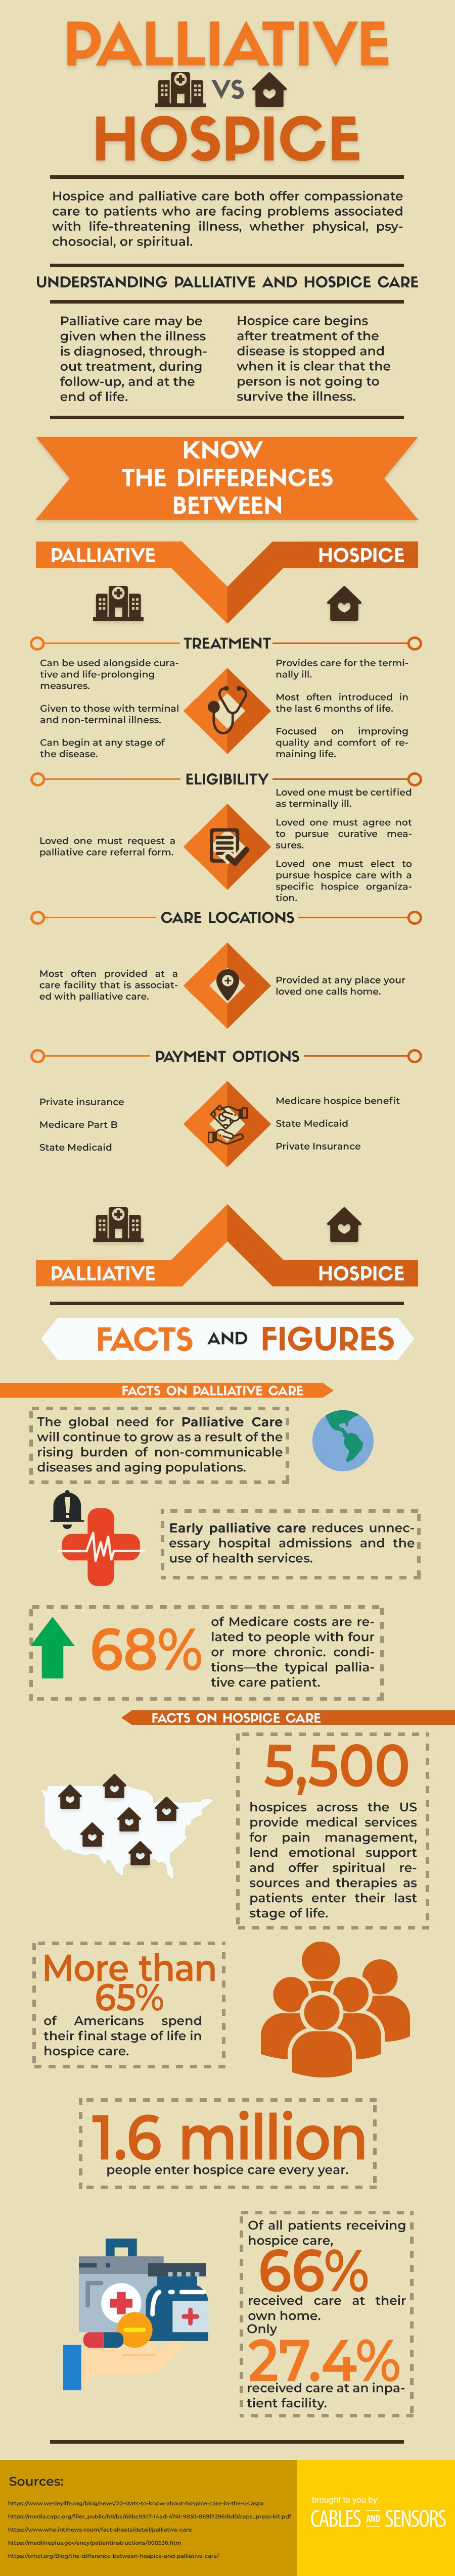 How palliative and hospice care improve the quality of life